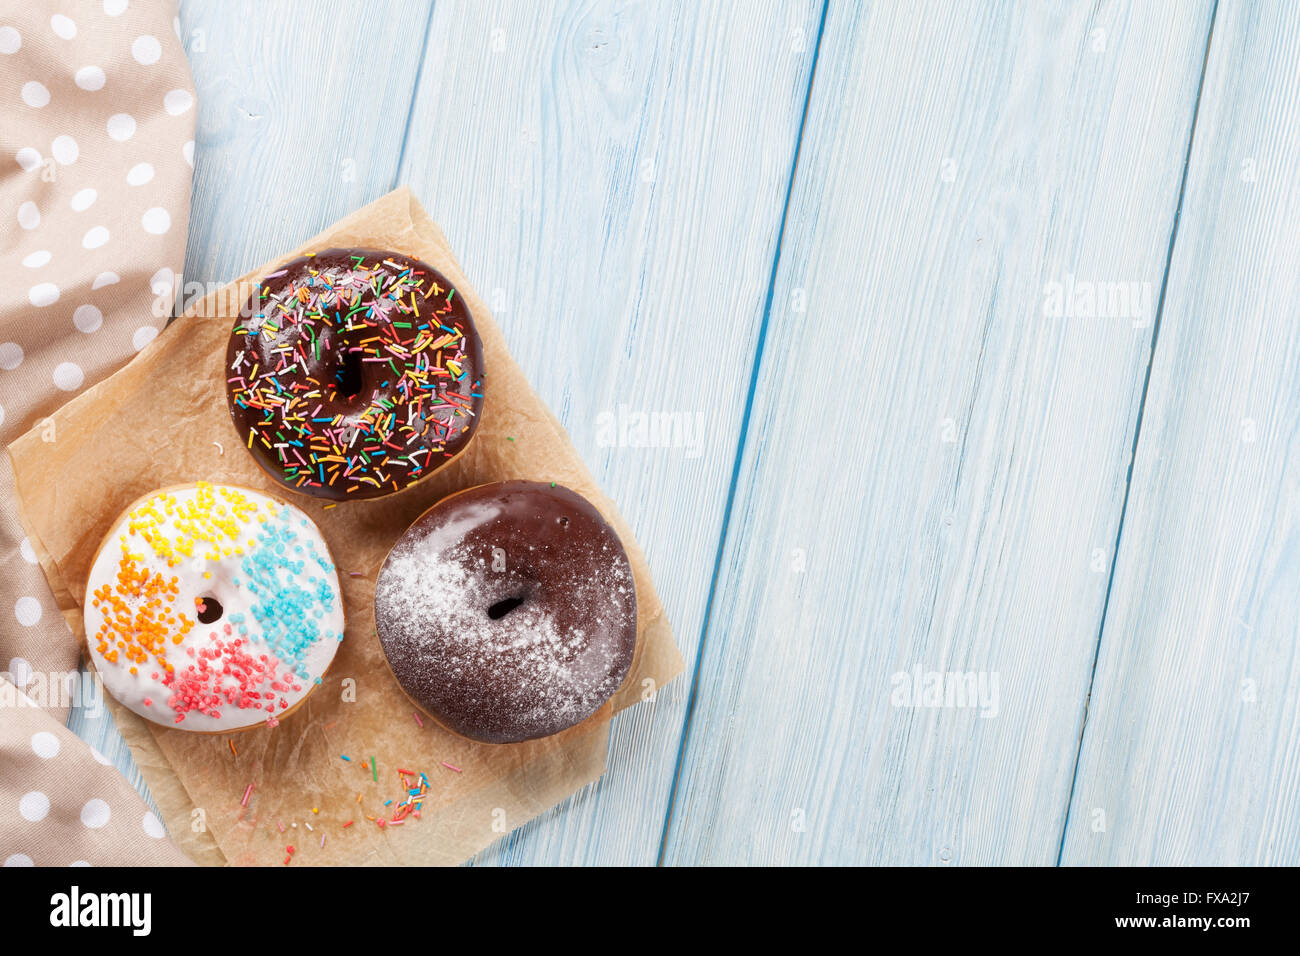 Donuts with colorful decor on wooden table. Top view with copy space - Stock Image